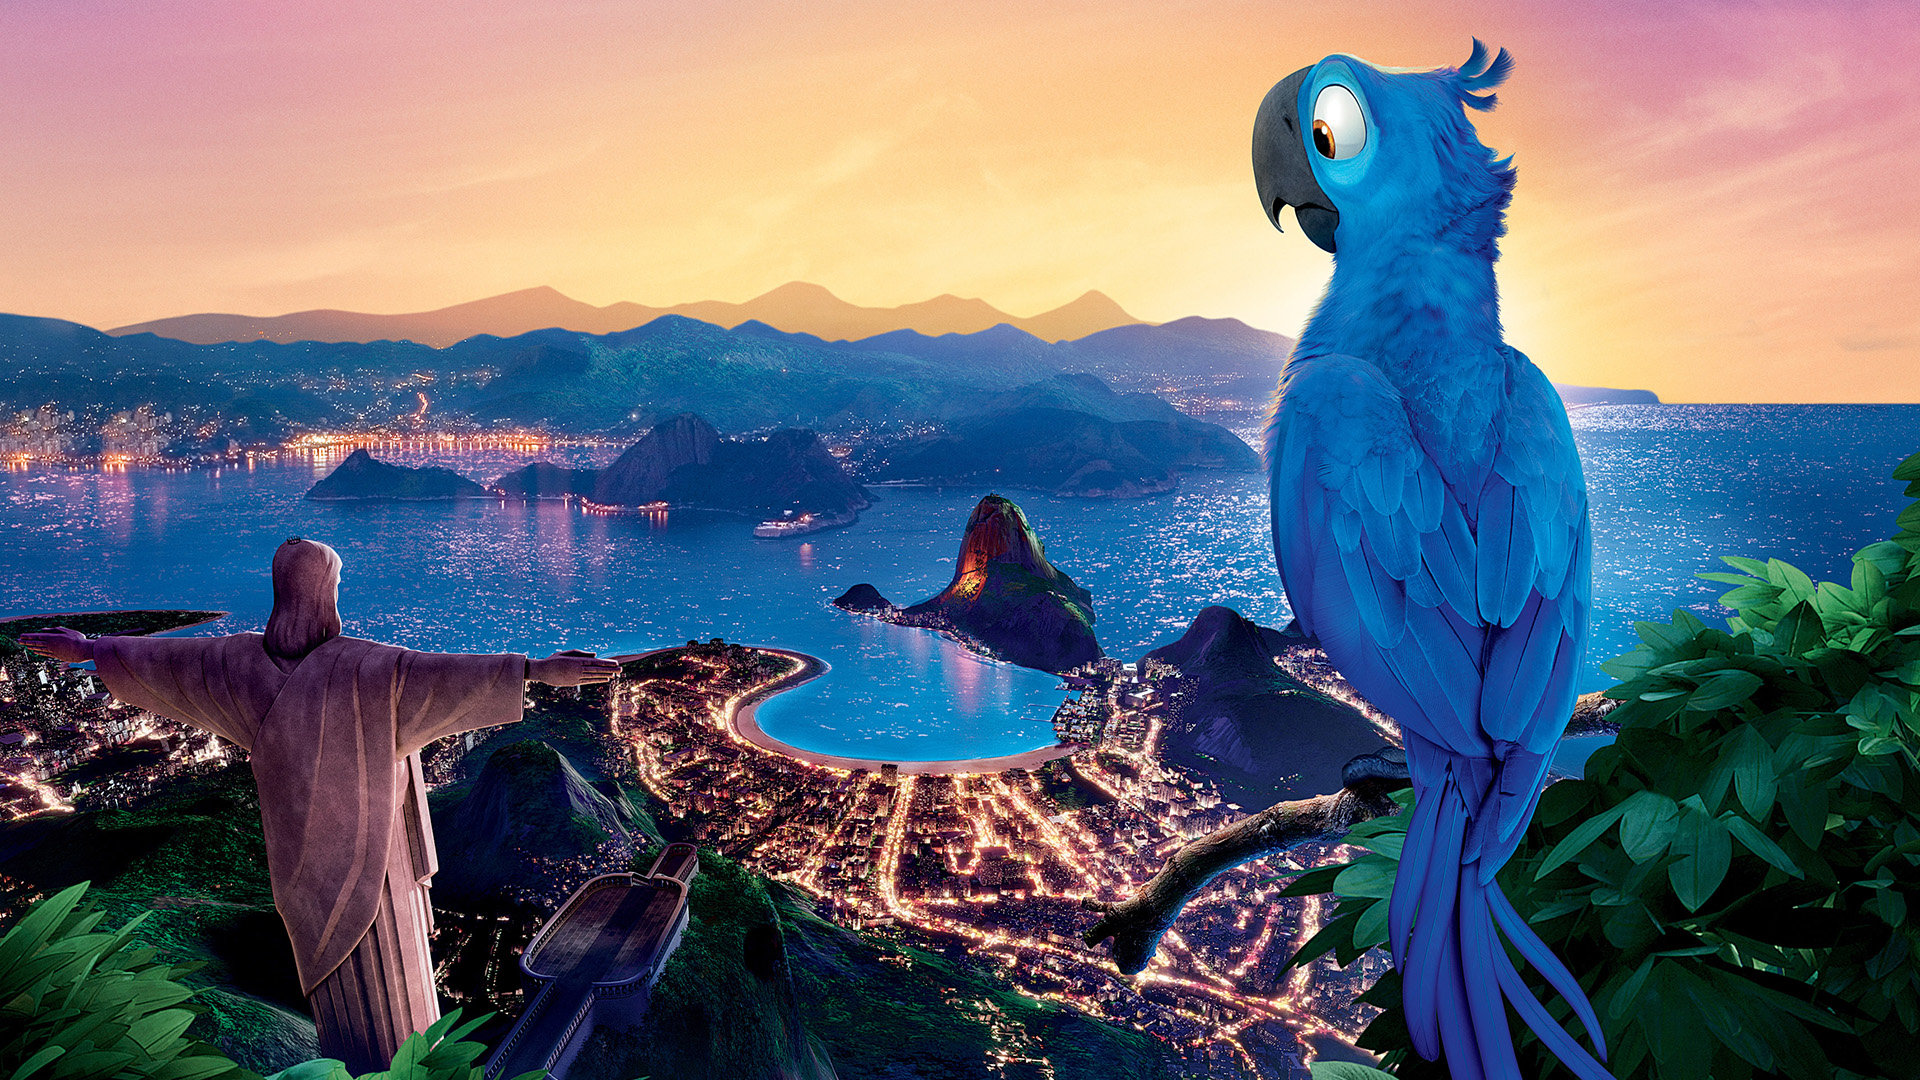 free download rio background id:449155 full hd for computer